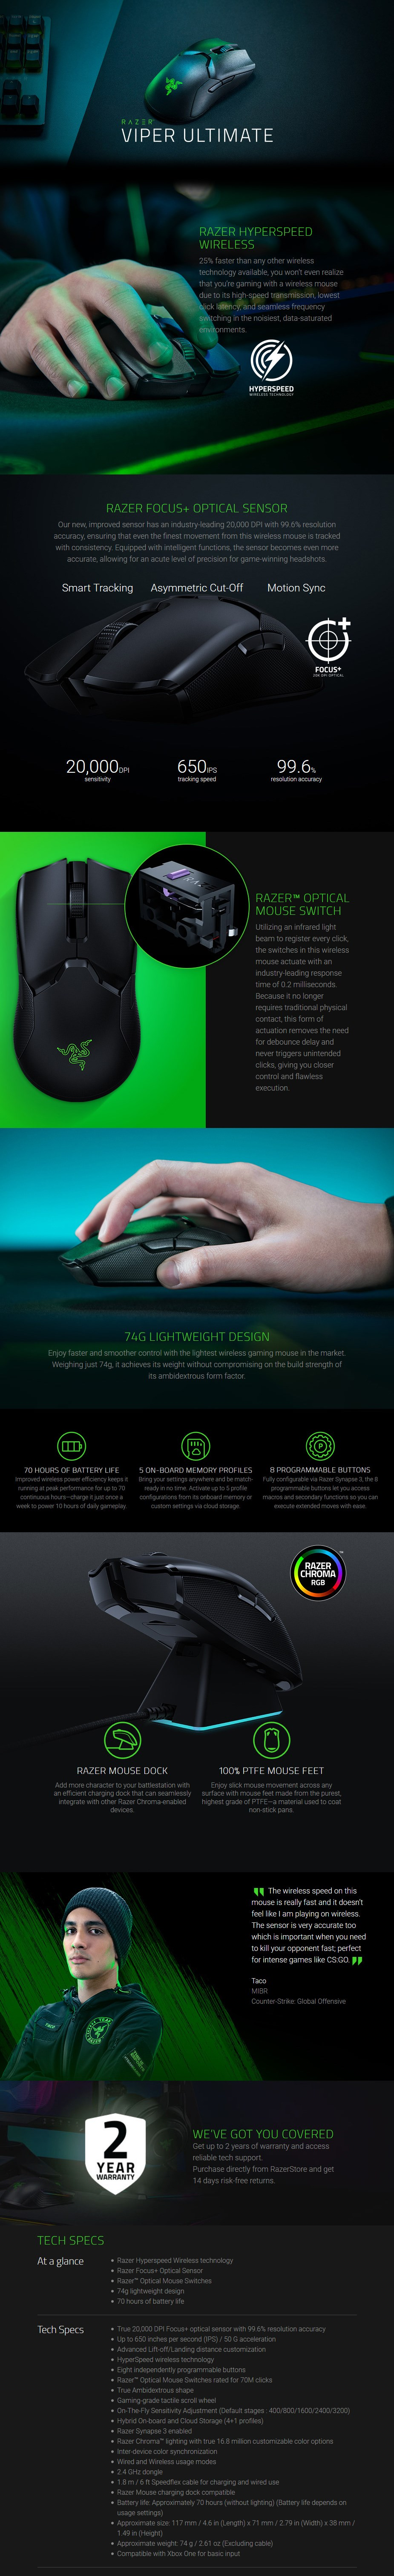 razer-viper-ultimate-wireless-gaming-mouse-with-charging-dock-ac28484-9.jpg